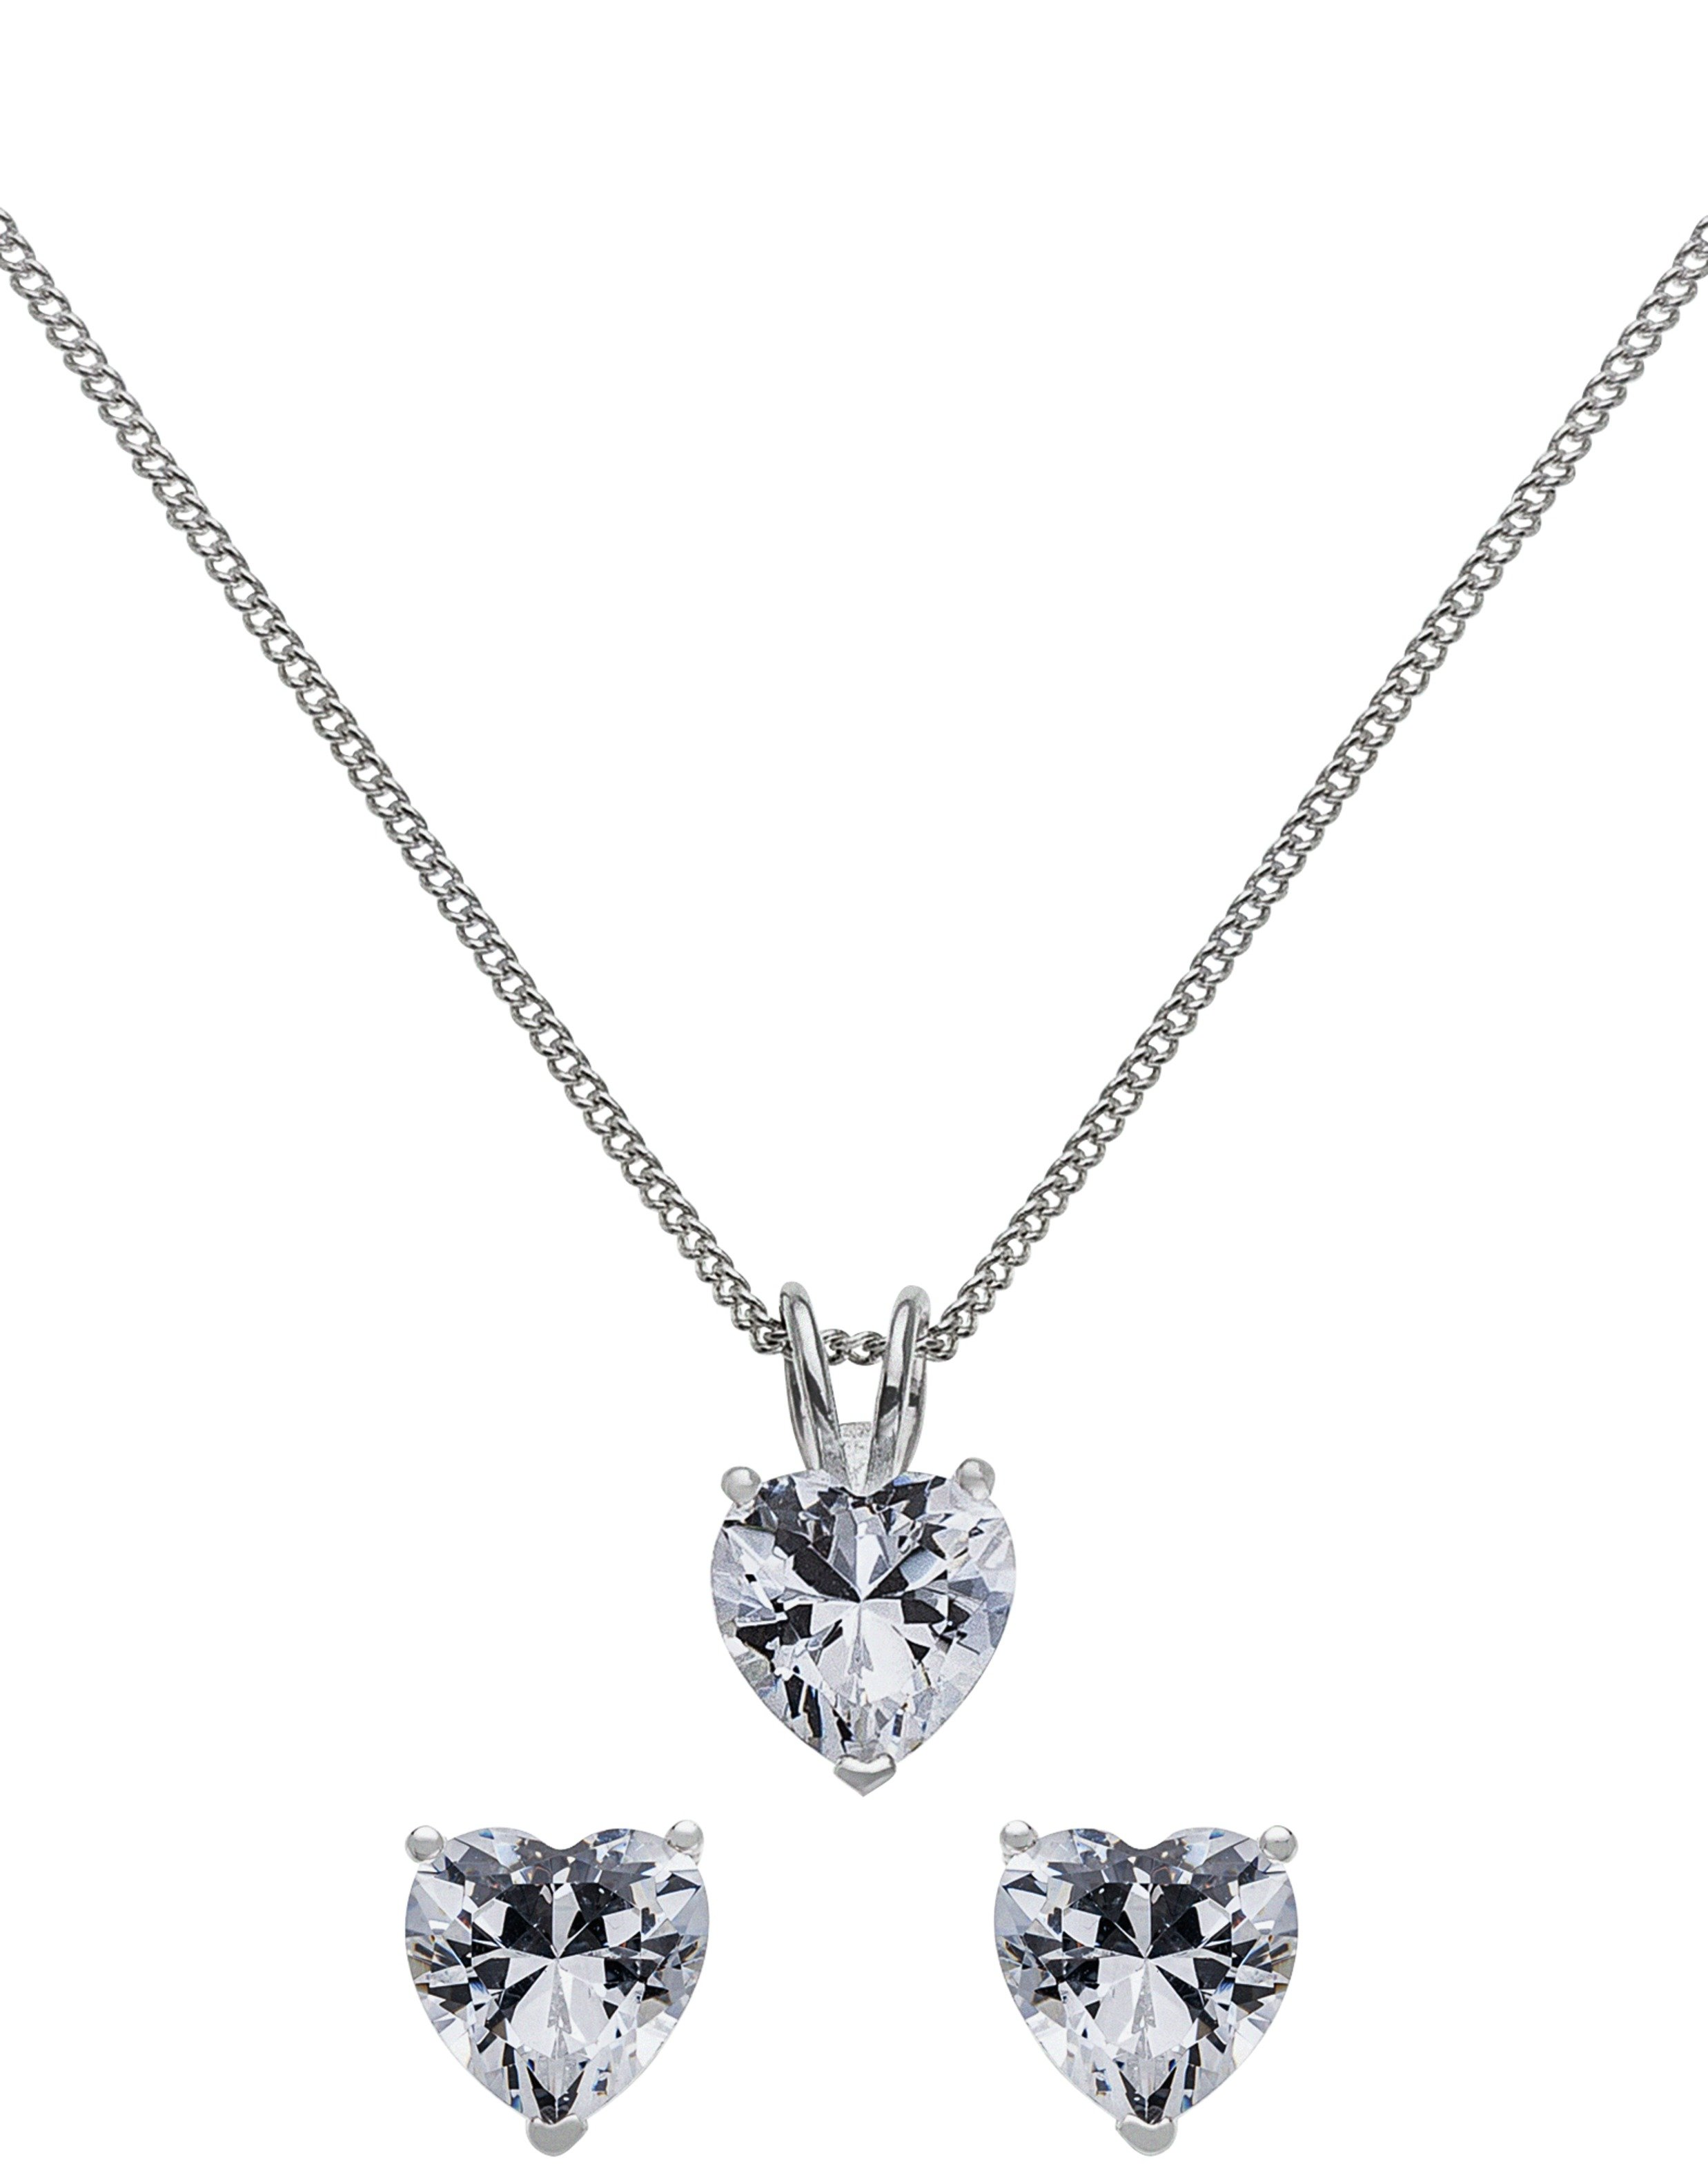 Sterling Silver - Cubic Zirconia Heart Pendant and Earrings.